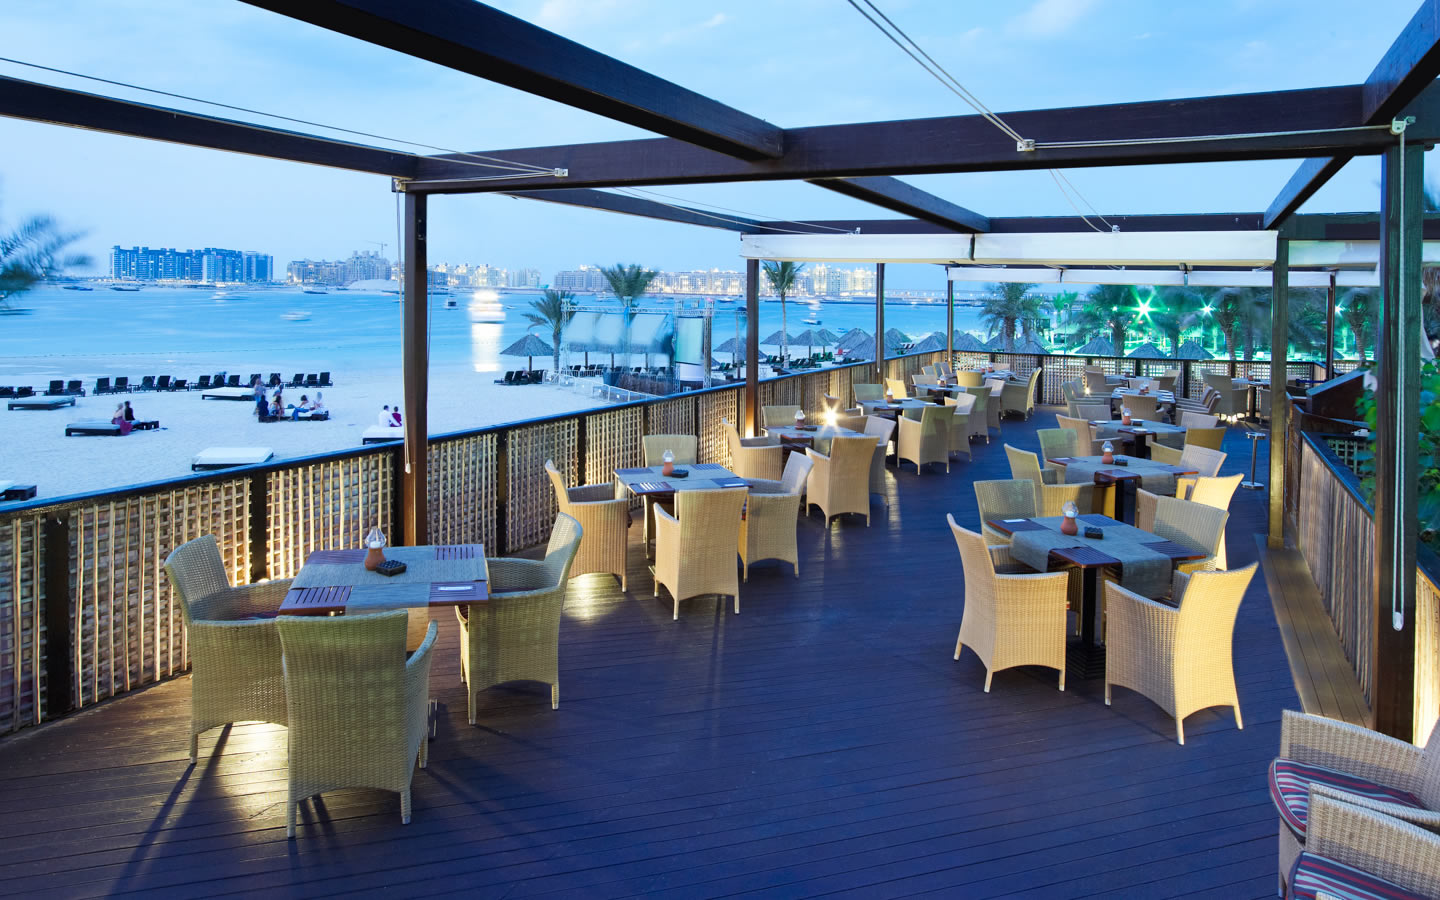 15 Best Outdoor Terraces in Dubai - Barasti, Le Meridien Mina Seyahi